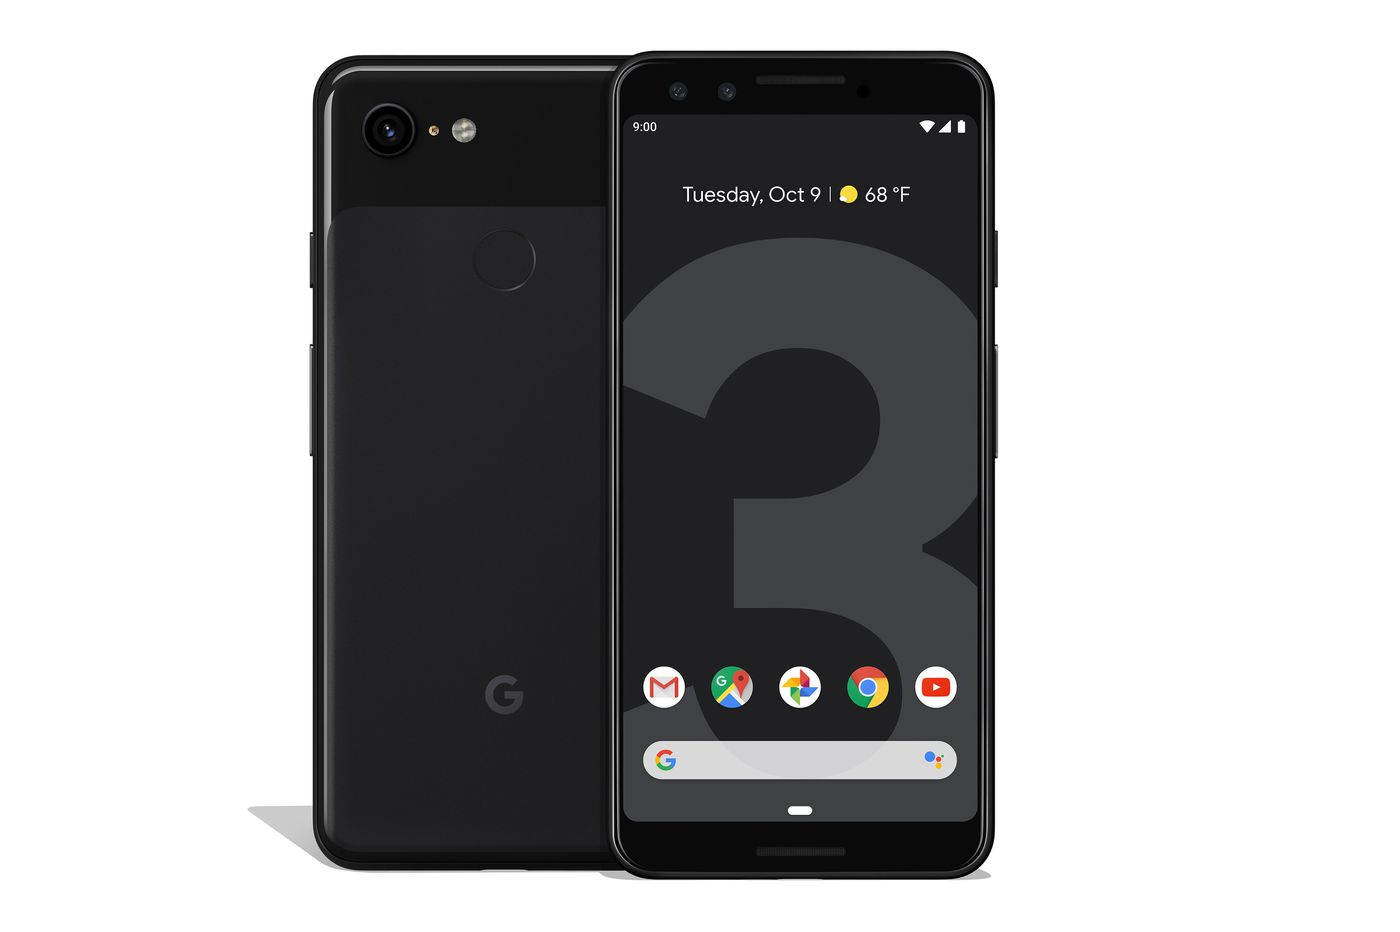 Google promises its Pixel 3 phone is sexier on the inside than the outside